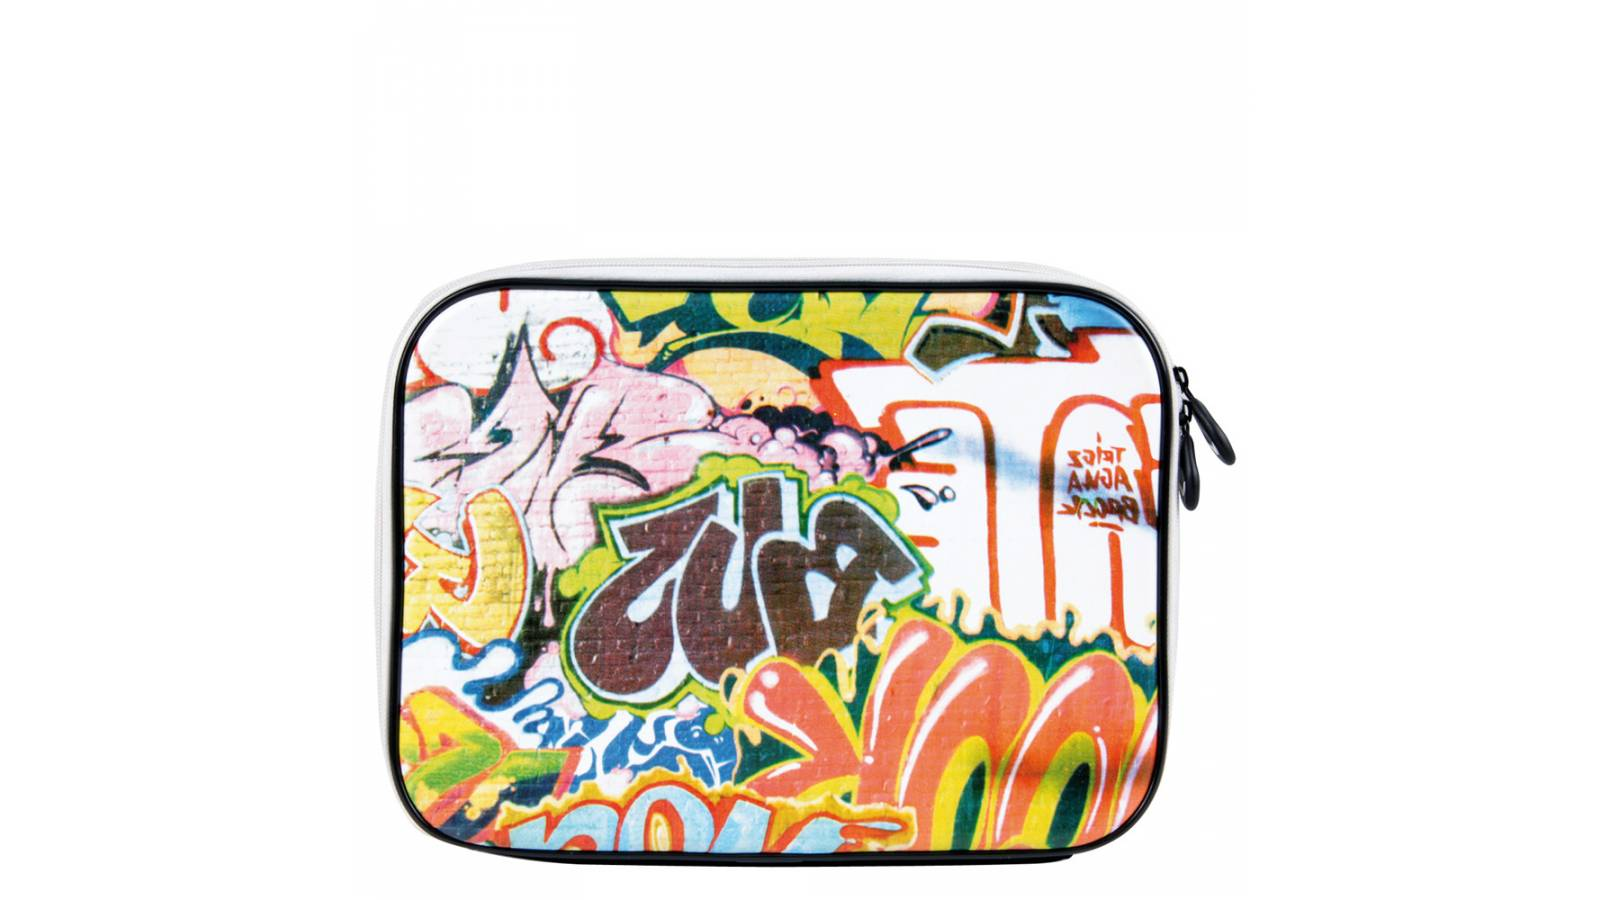 "Funda de neopreno para Tablet o Netbook 10.1"" GRAFFITI CNL-NB03A"